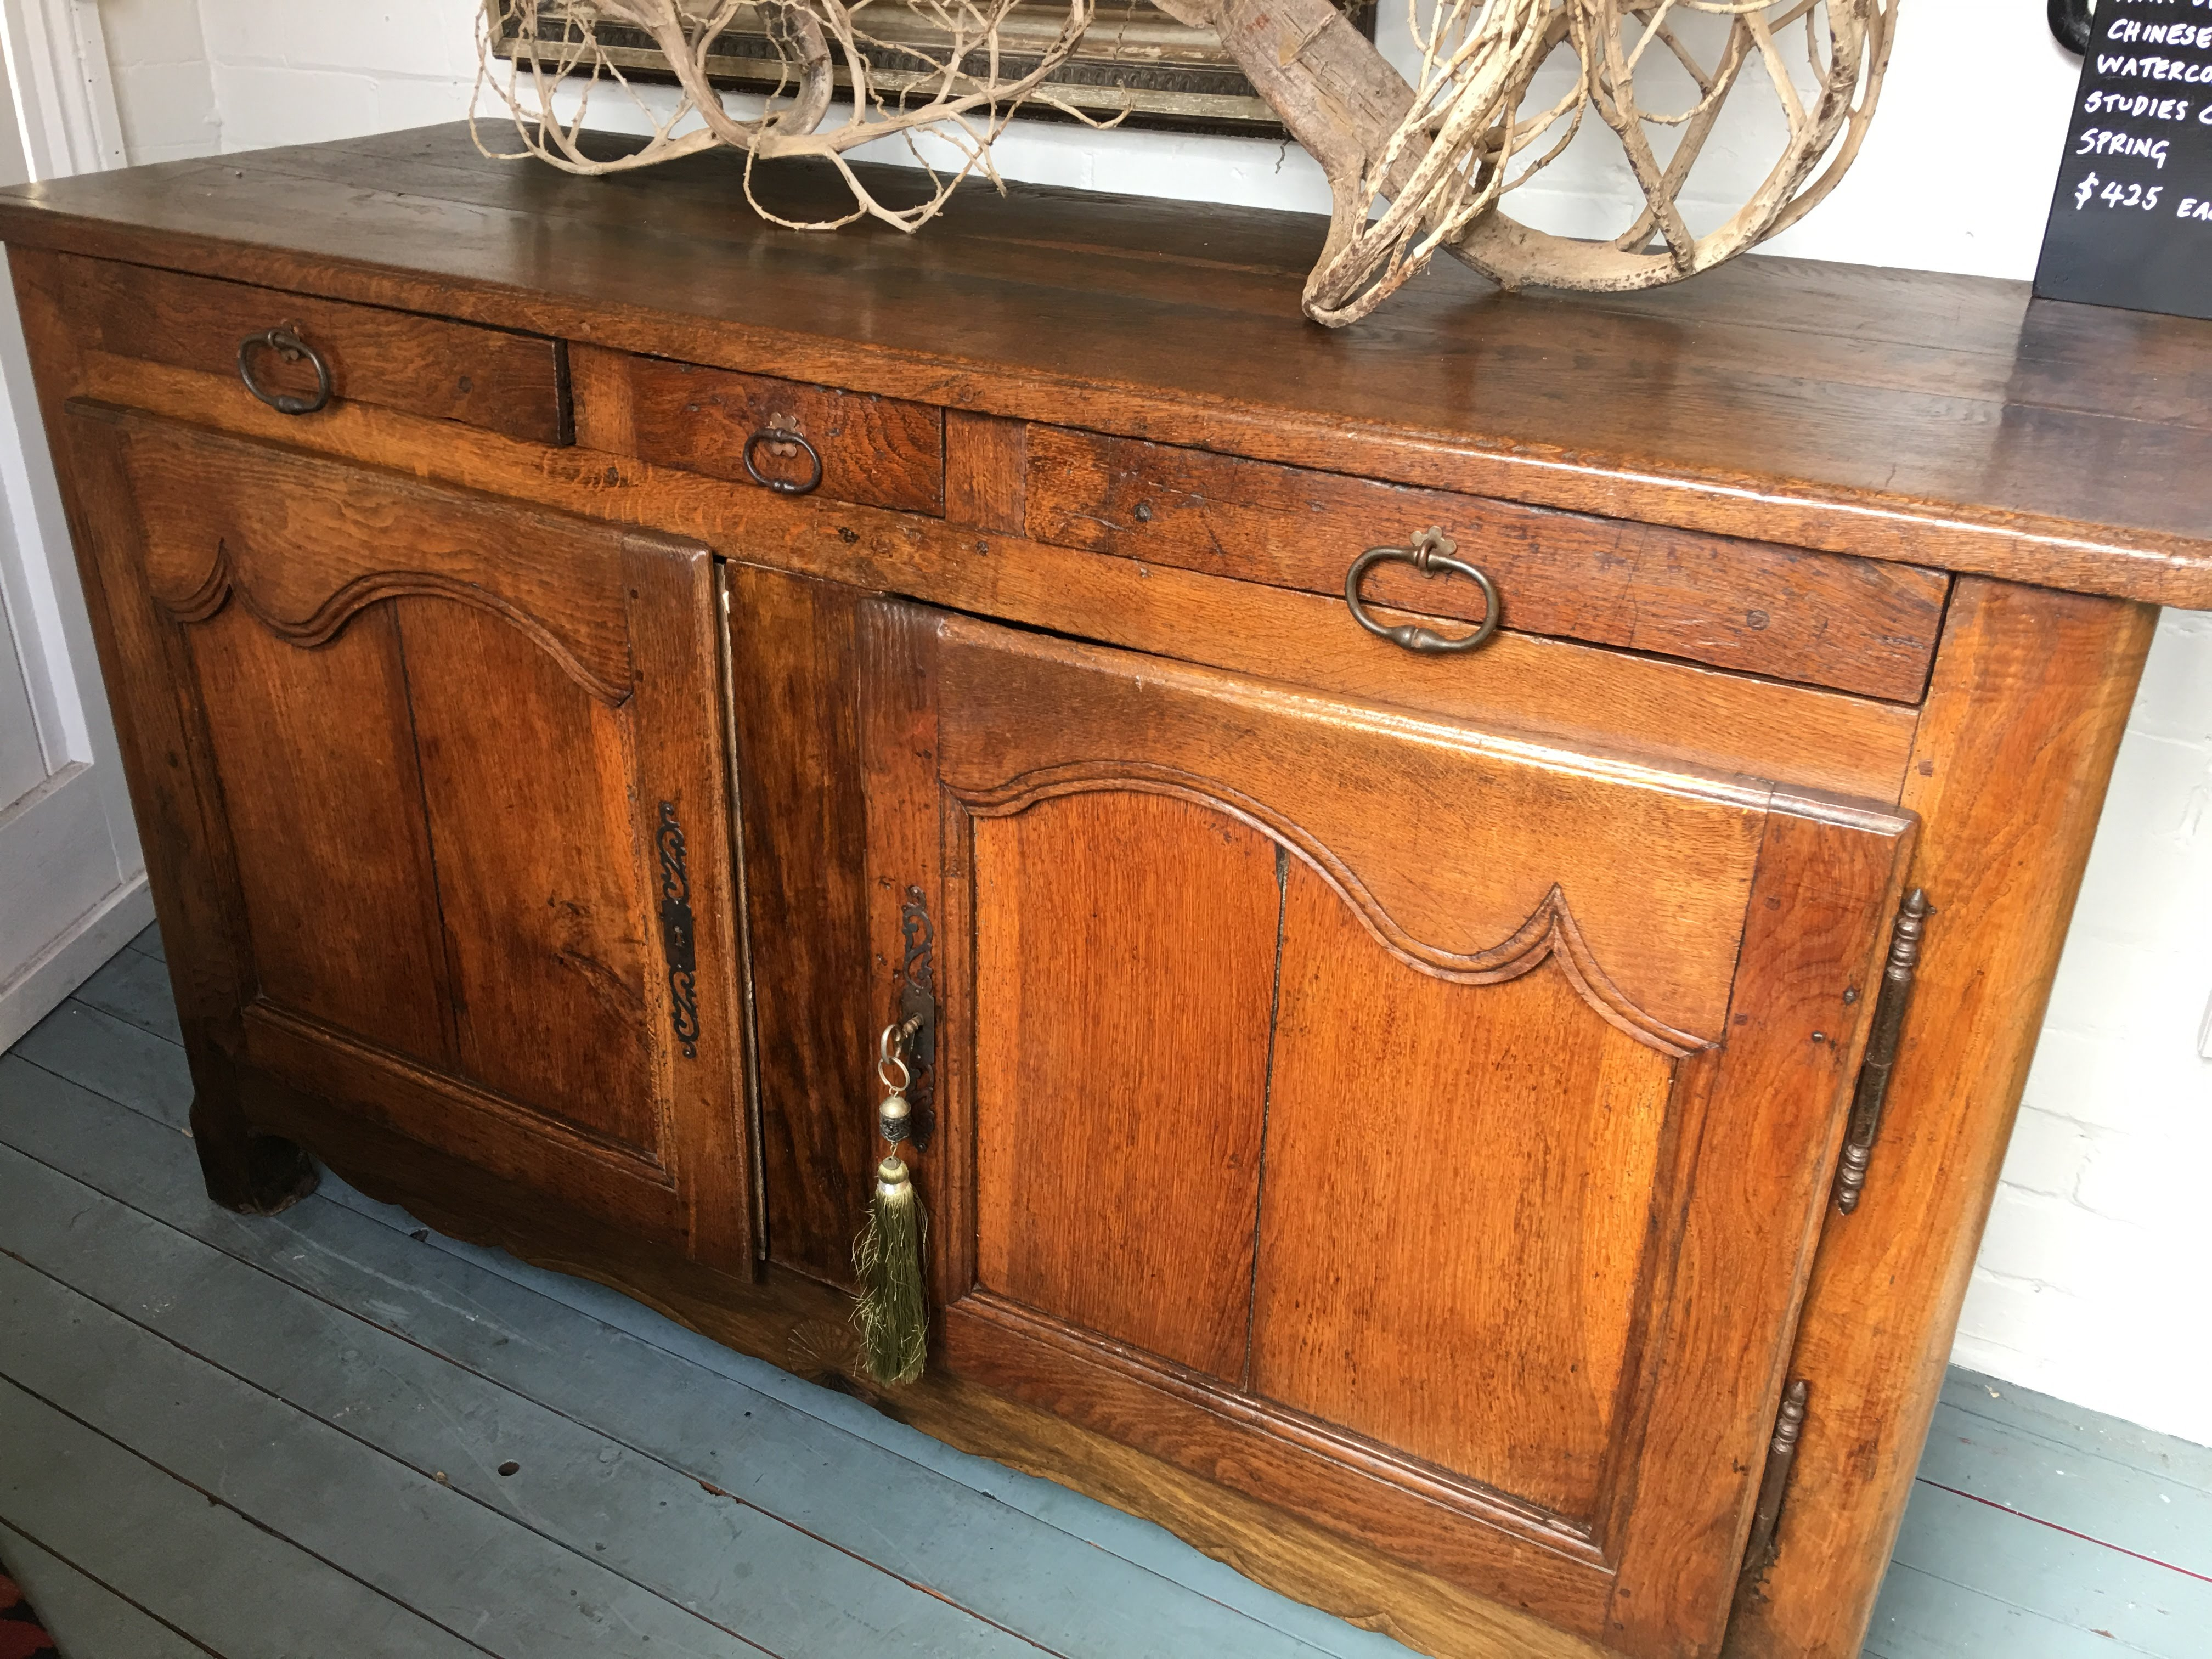 Cabinets & Cupboards Antiques Original Early Australian Natural Oak Sideboard Hand Crafted